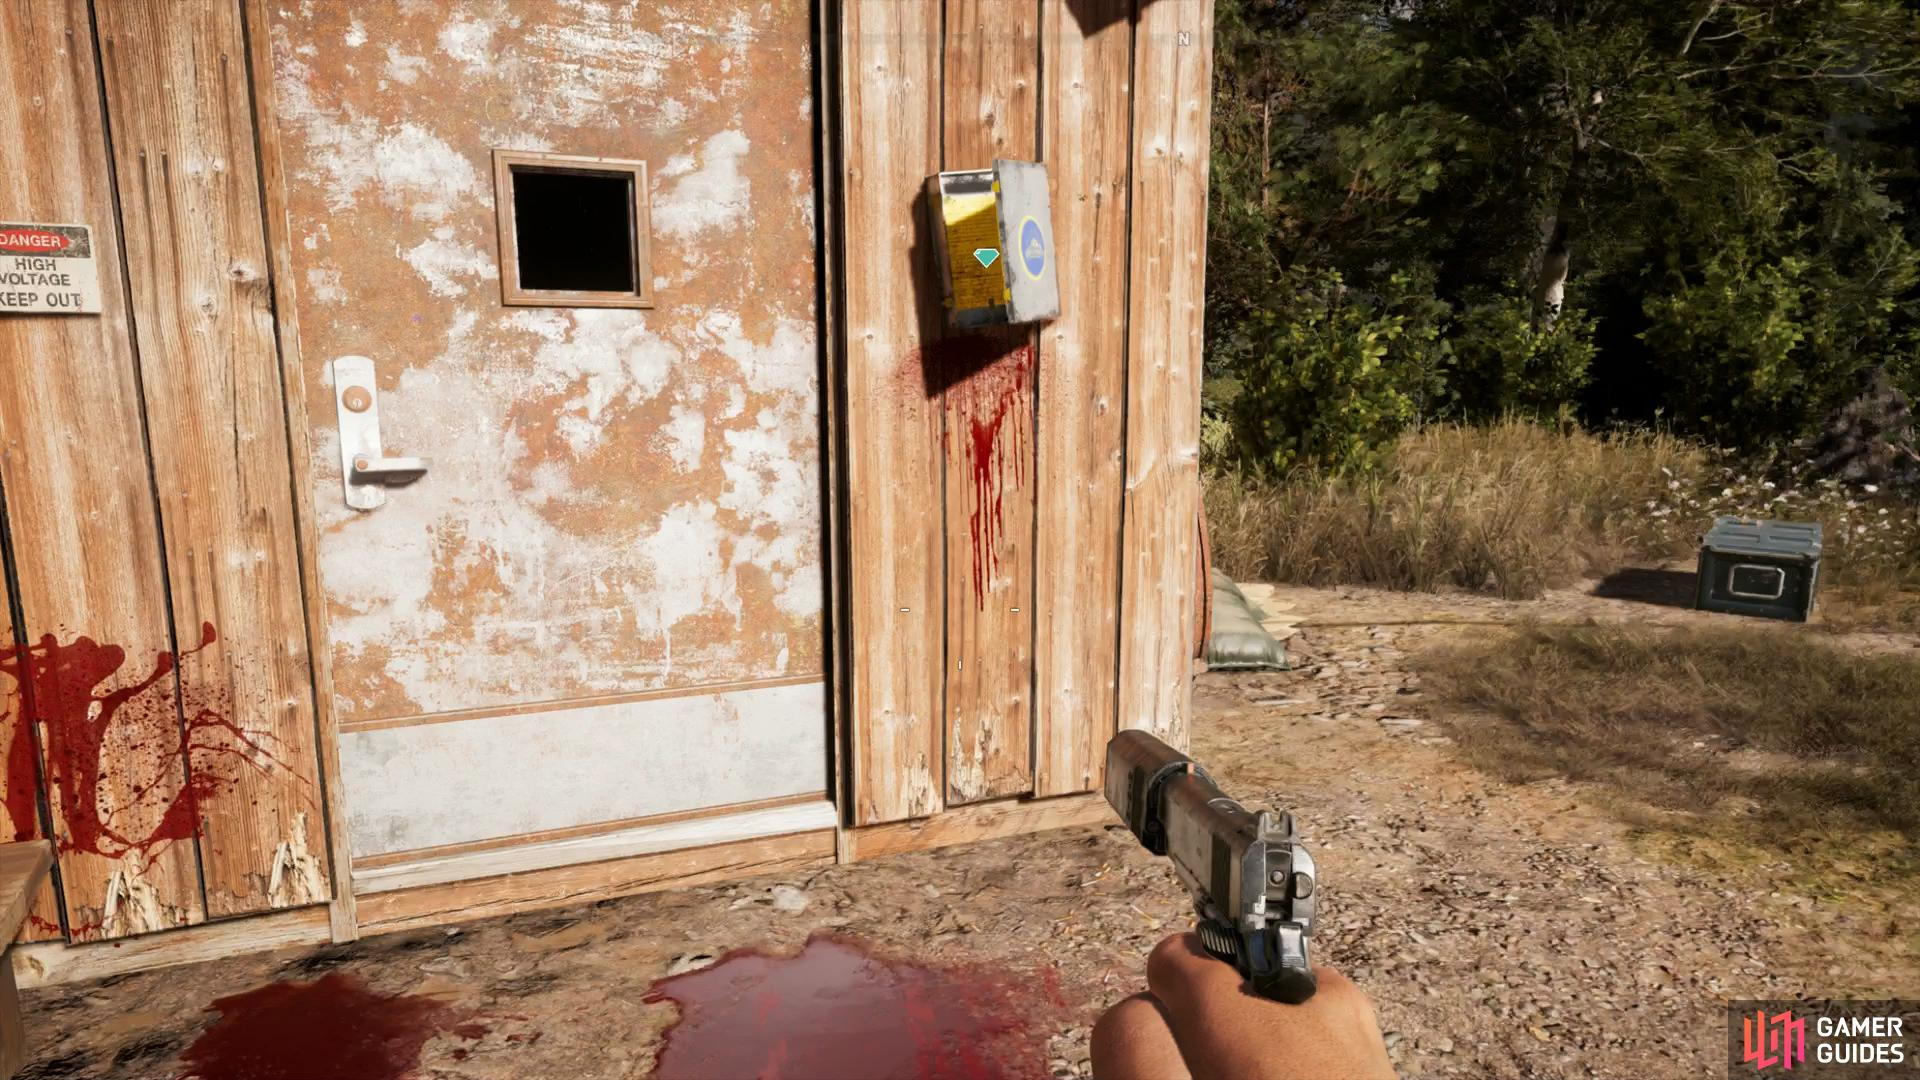 the Prepper Note is located at the locked door